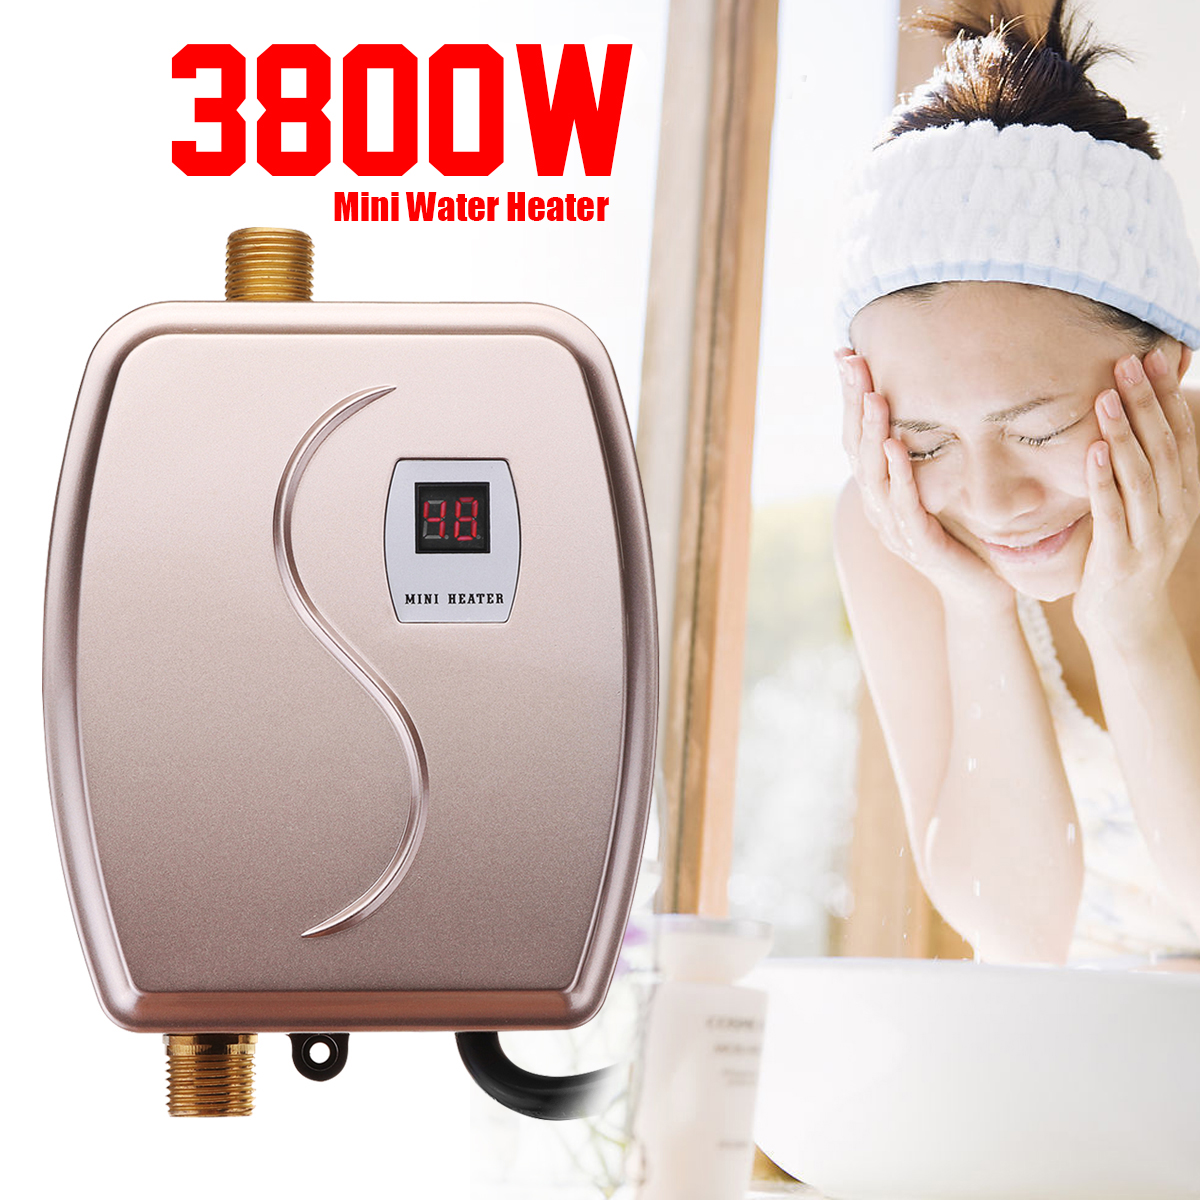 Water Boiler Electric Water Heater 3800W Mini Instant Heating LED Display Electric Hot Water Heater Leakage Protection Kitchen(China)